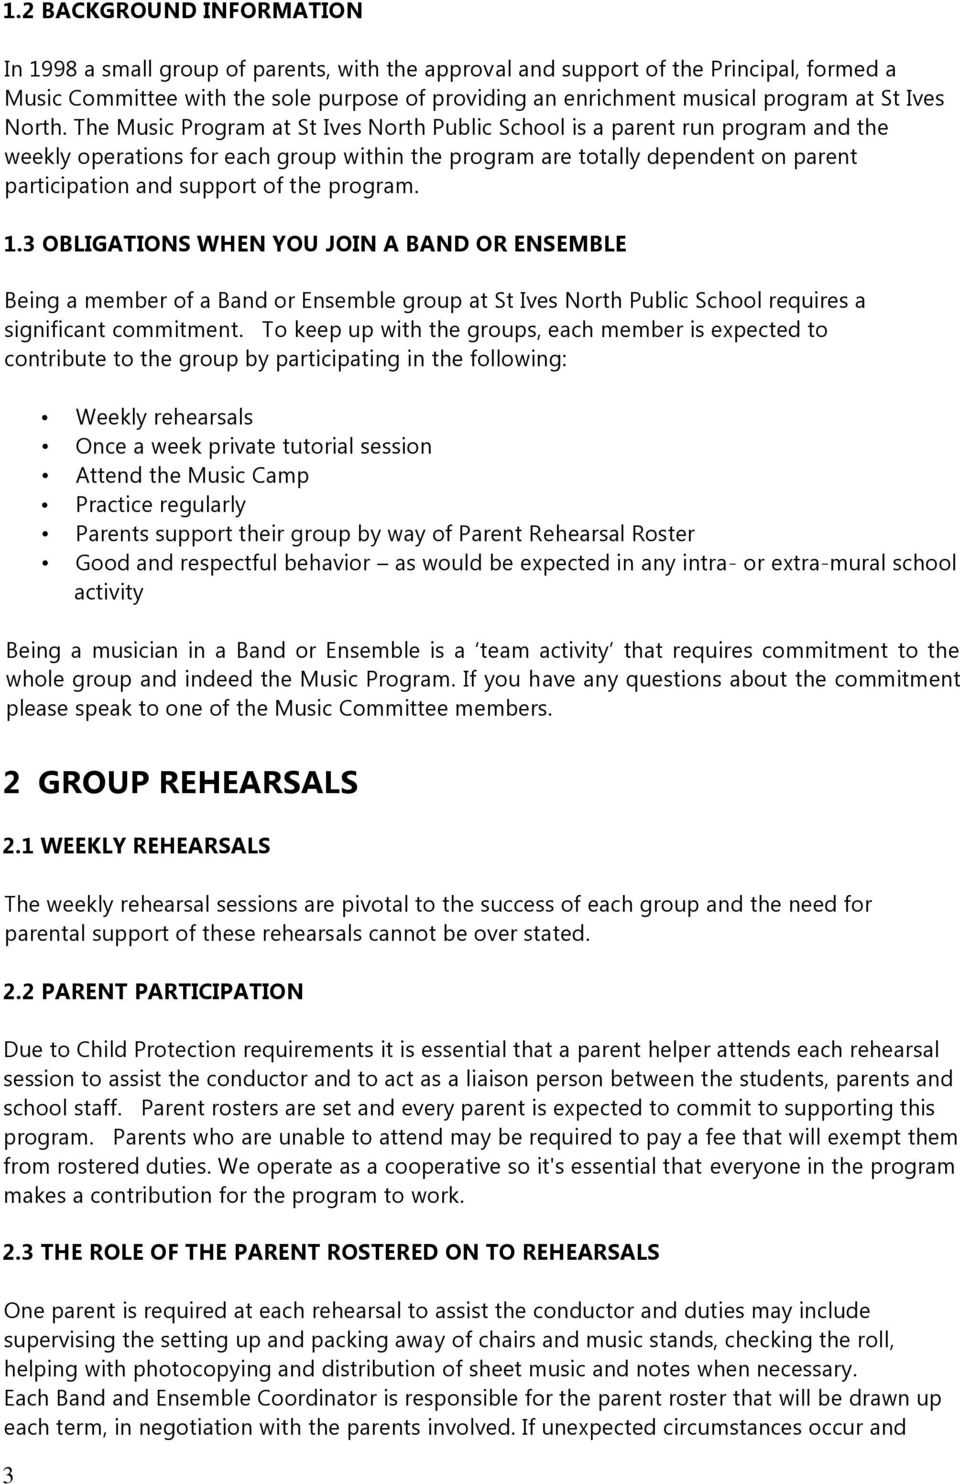 ST IVES NORTH PUBLIC SCHOOL BAND AND STRINGS - PDF